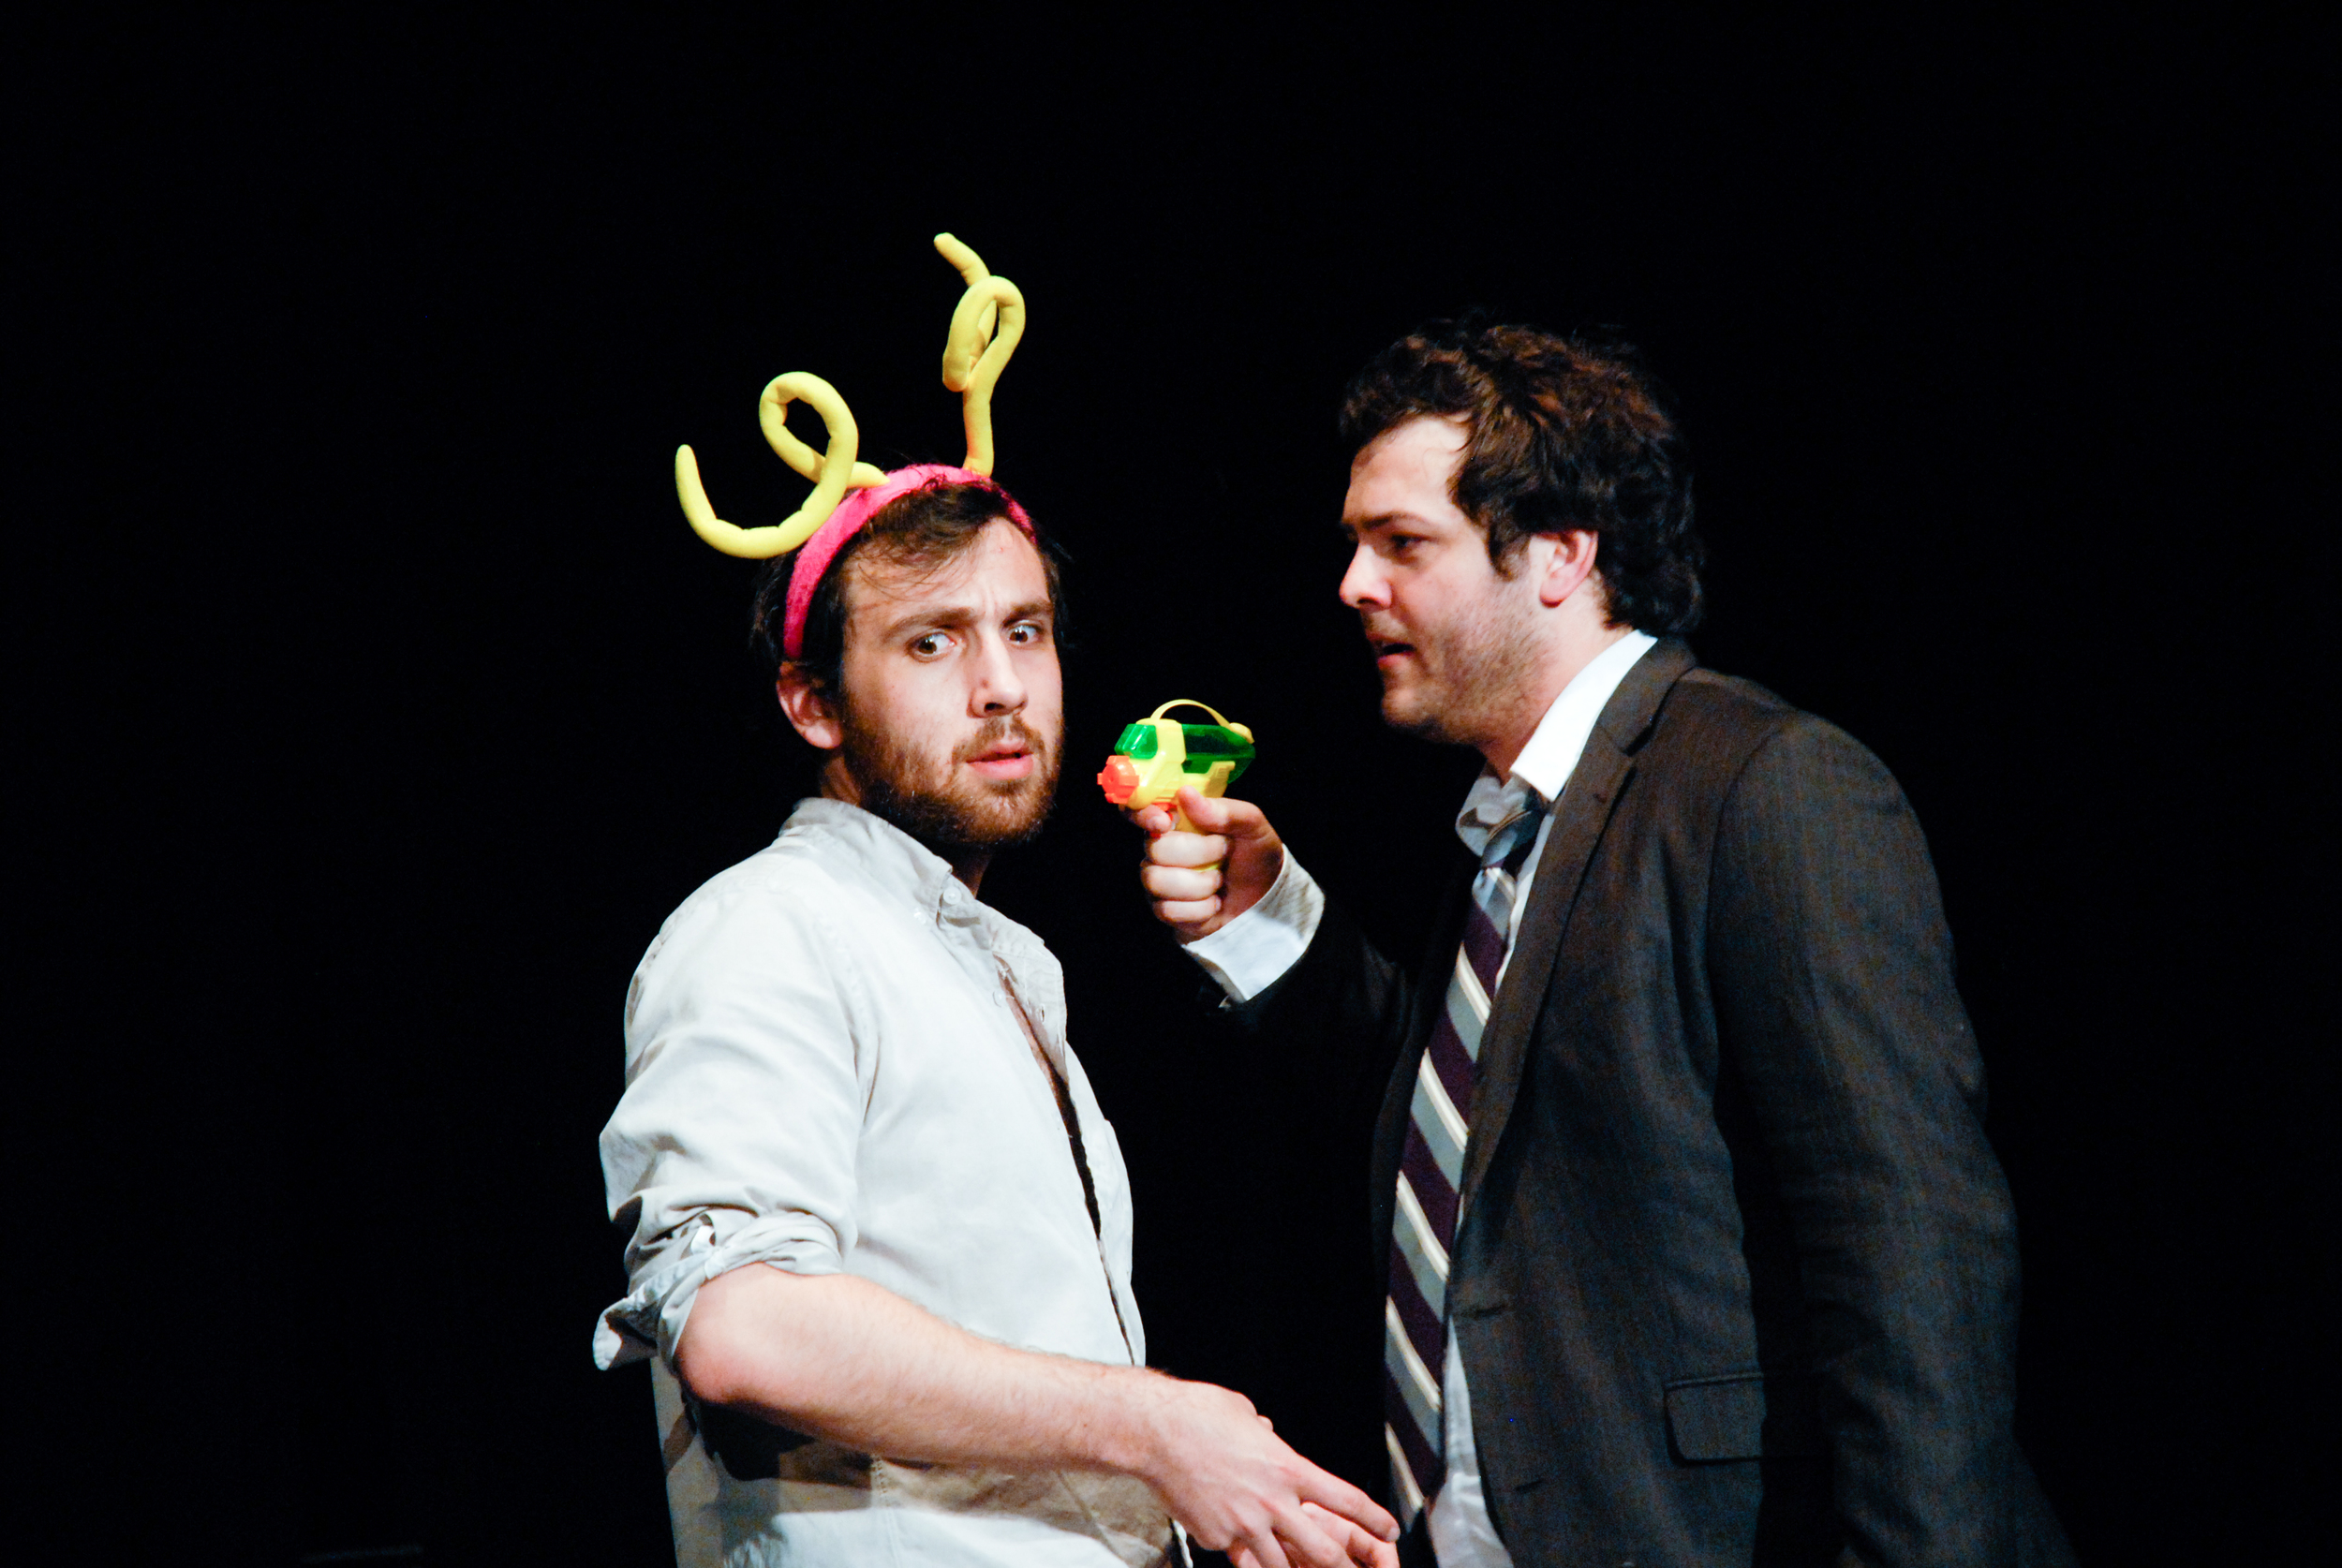 The Monster Closet  by Jonathan Goldberg. Dan Moyer and Nathaniel Kent. Complex Theatre, Los Angeles, 2010.